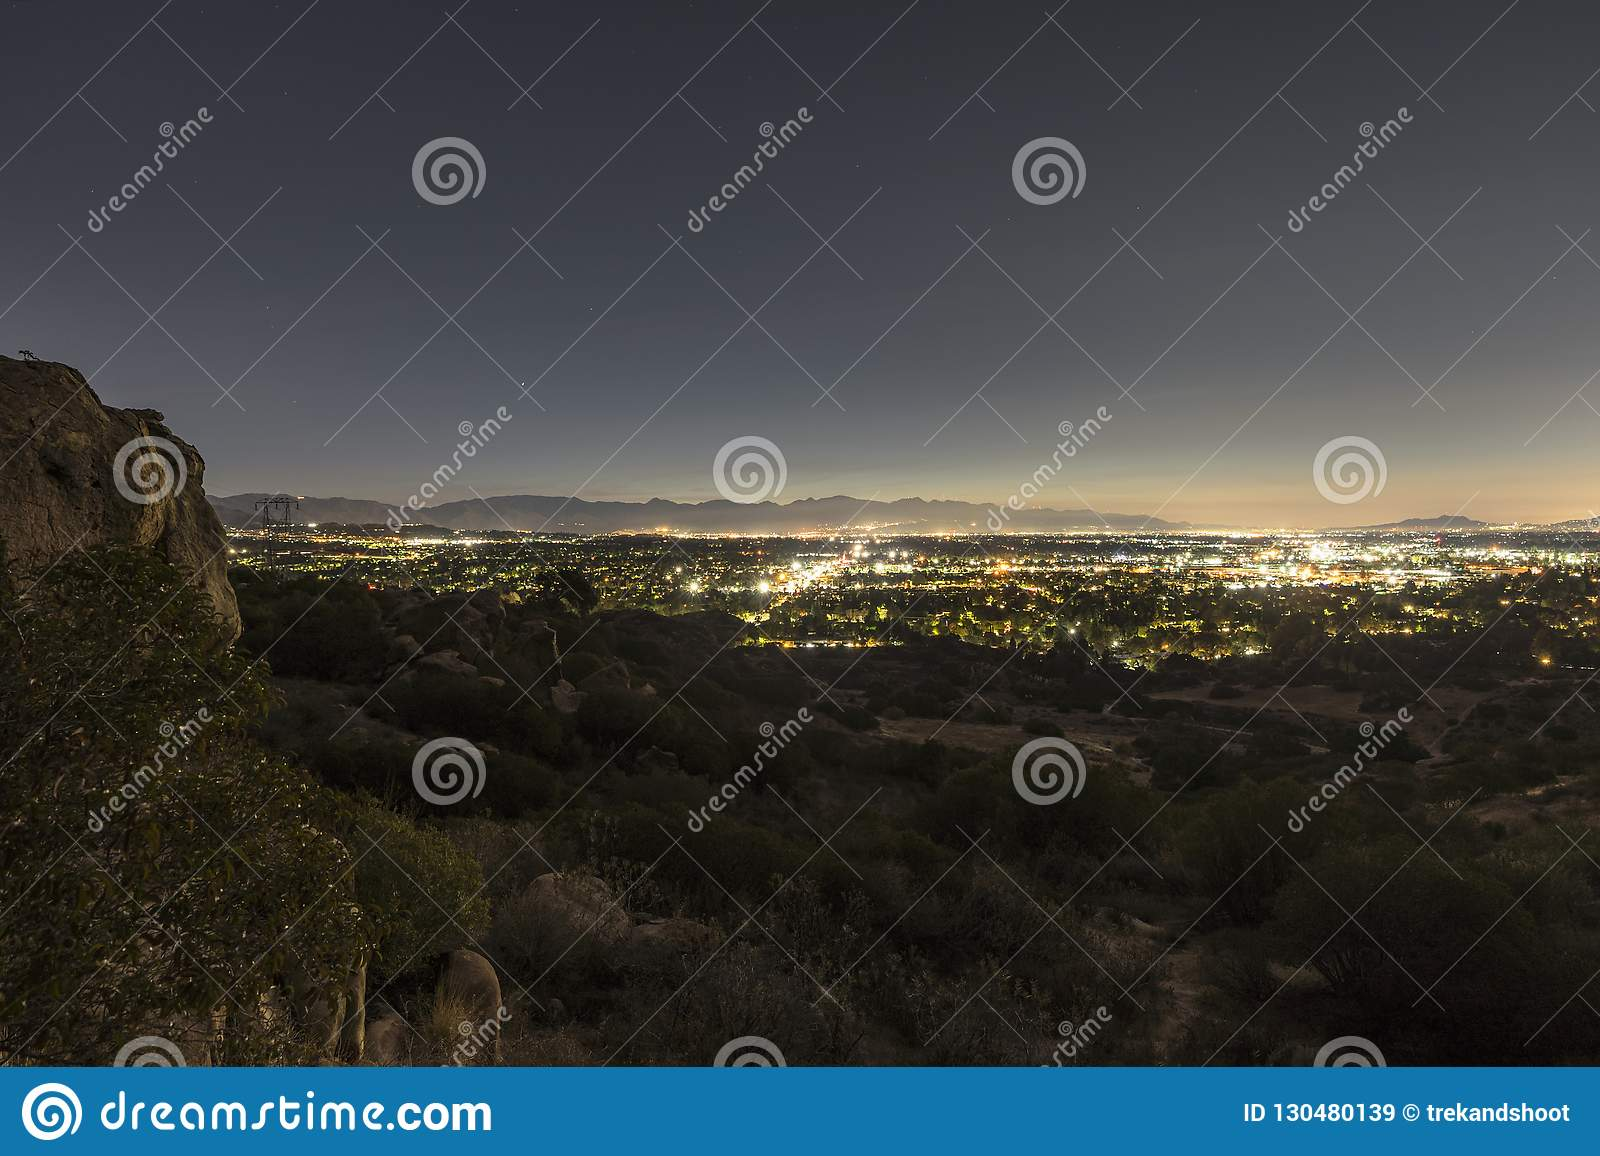 Los Angeles Predawn Scenic View San Fernando Valley Stock Image